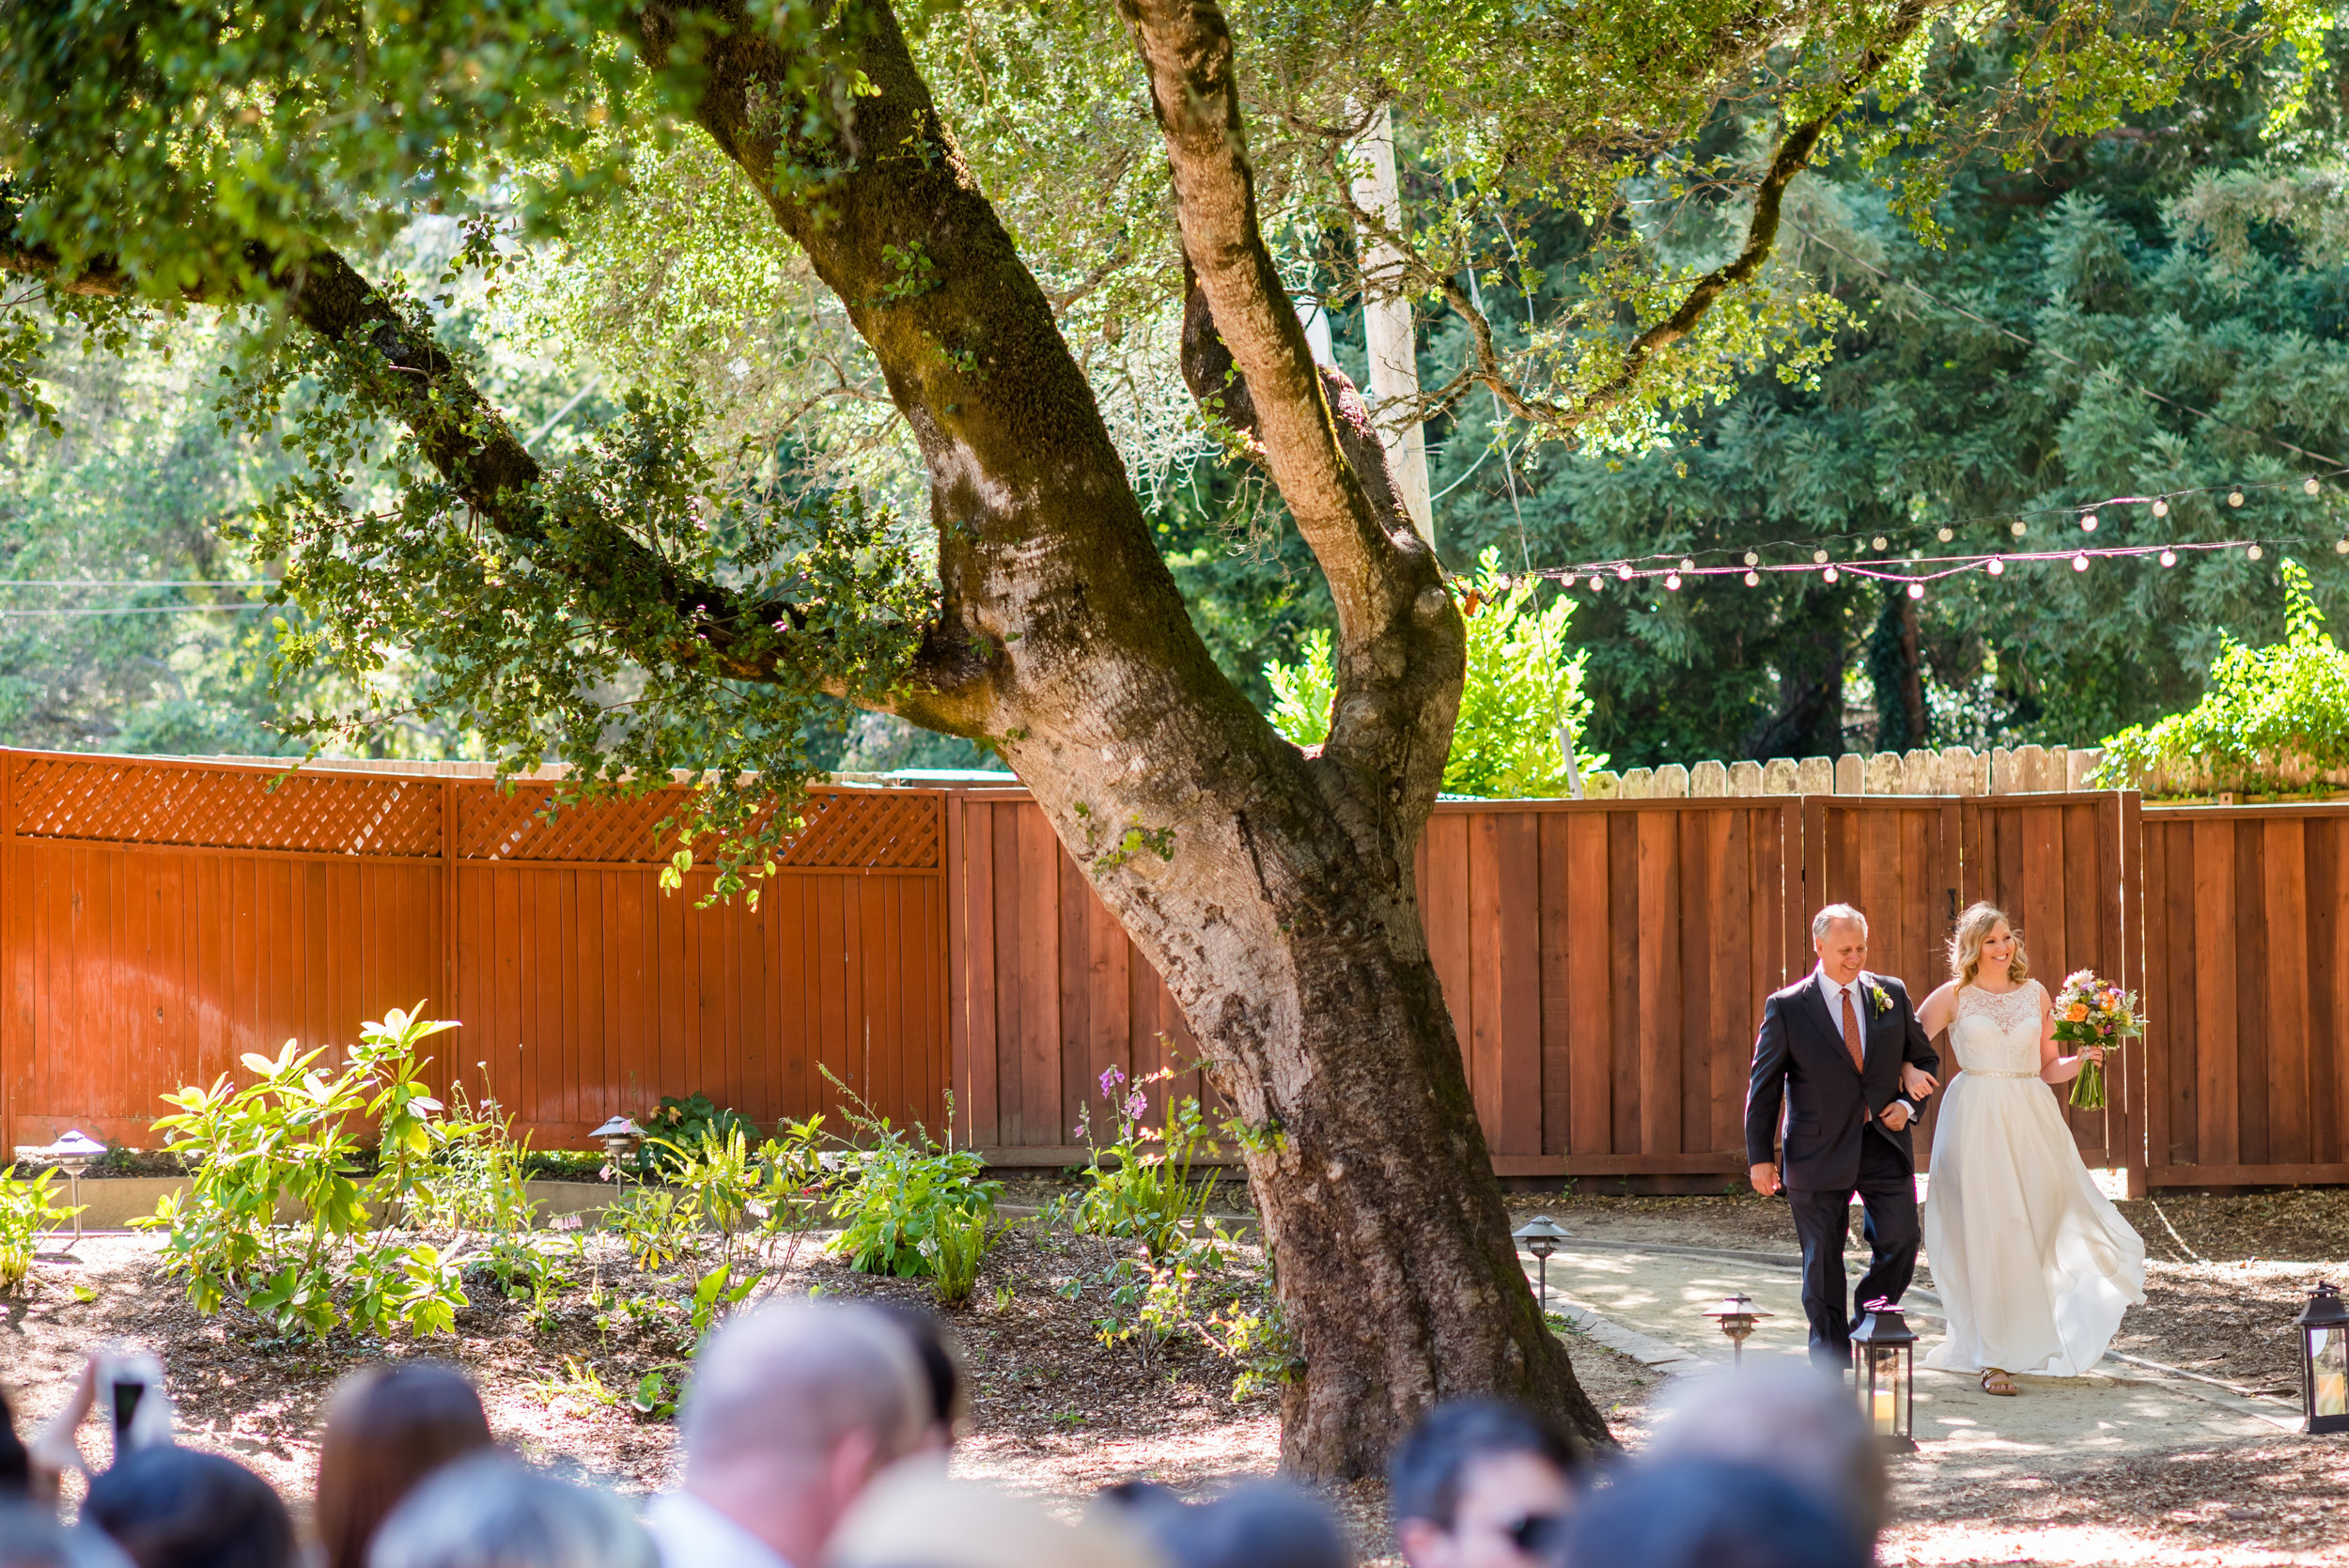 suz-bryan-013-mountain-terrace-woodside-wedding-photographer-katherine-nicole-photography.JPG